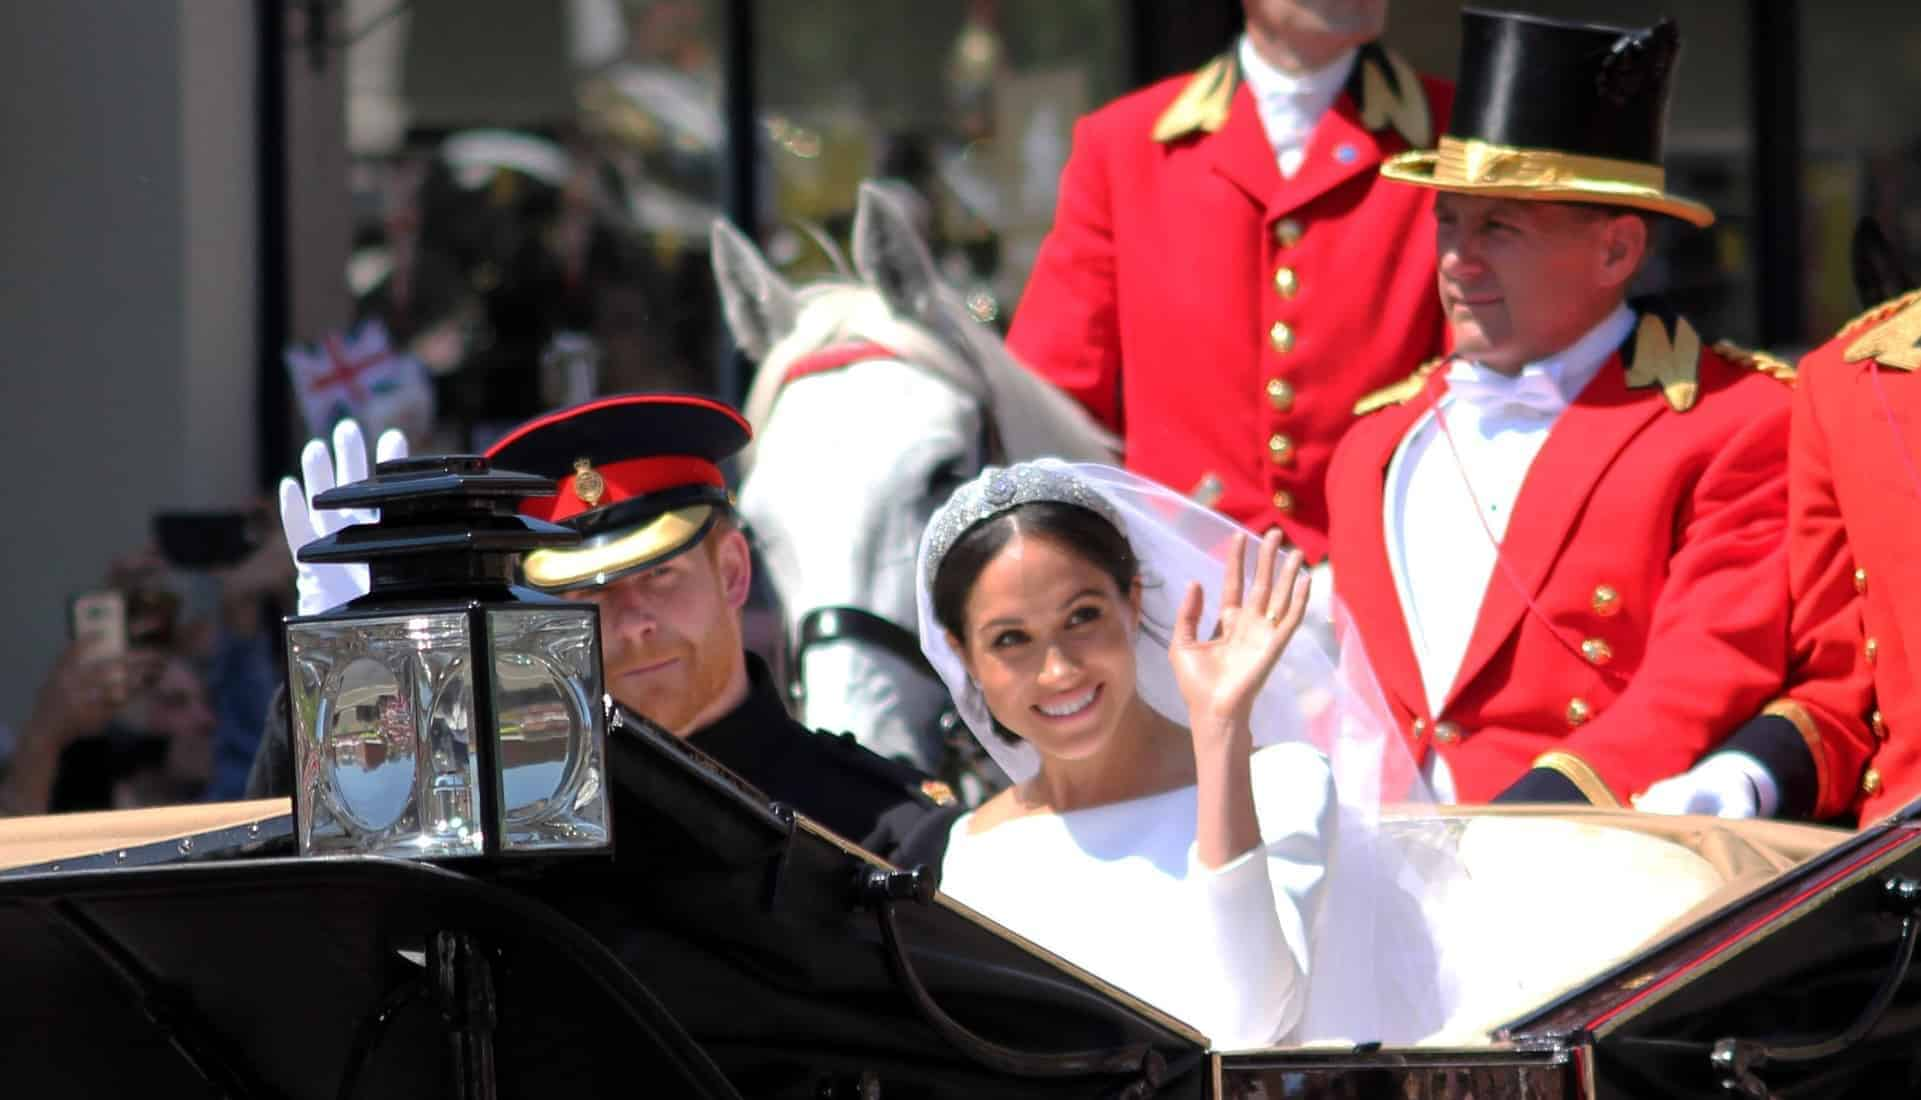 Prince Harry & Meghan Markle, Windsor, Uk - 19/5/2018: Prince Harry and Meghan Markle wedding procession through streets of Windsor then back the Windsor Castle Meghan waving to crowd in Givenchy dress.